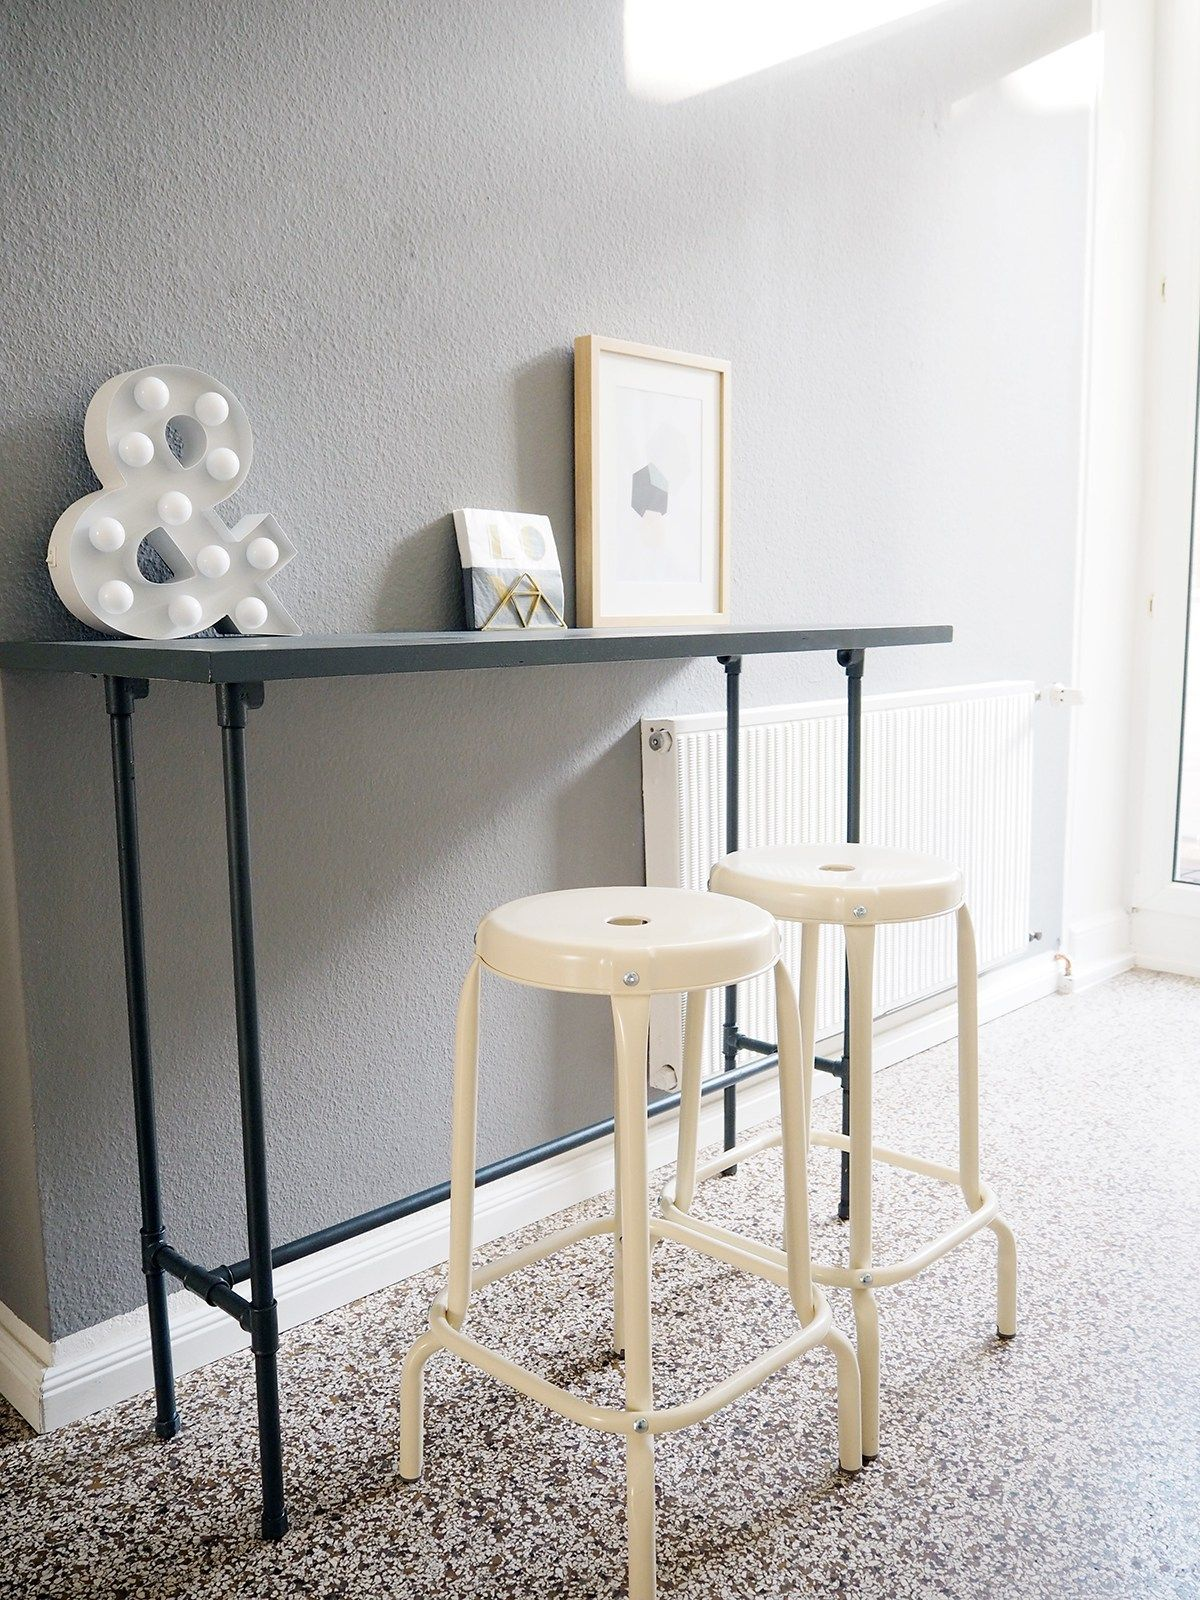 Diy Bartisch Aus Installationsrohren Küche Table Diy Und Furniture